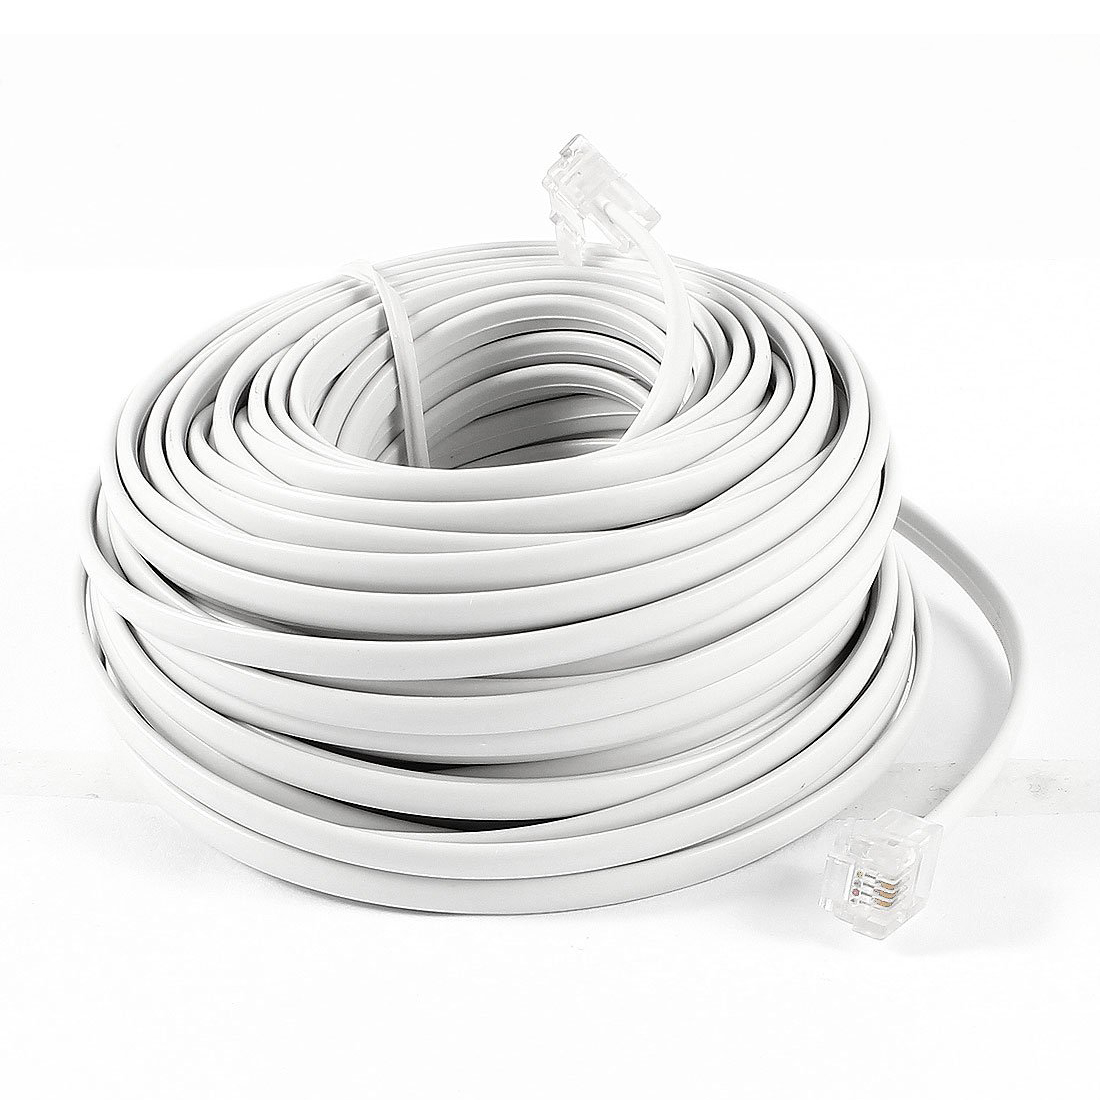 18M 60ft RJ11 6P4C Telephone Extension Cable Connector White quality 2m 4c telephone line rj11 6p4c connector phone cable pure copper wire for pbx analog digital phone customizable 1 100m